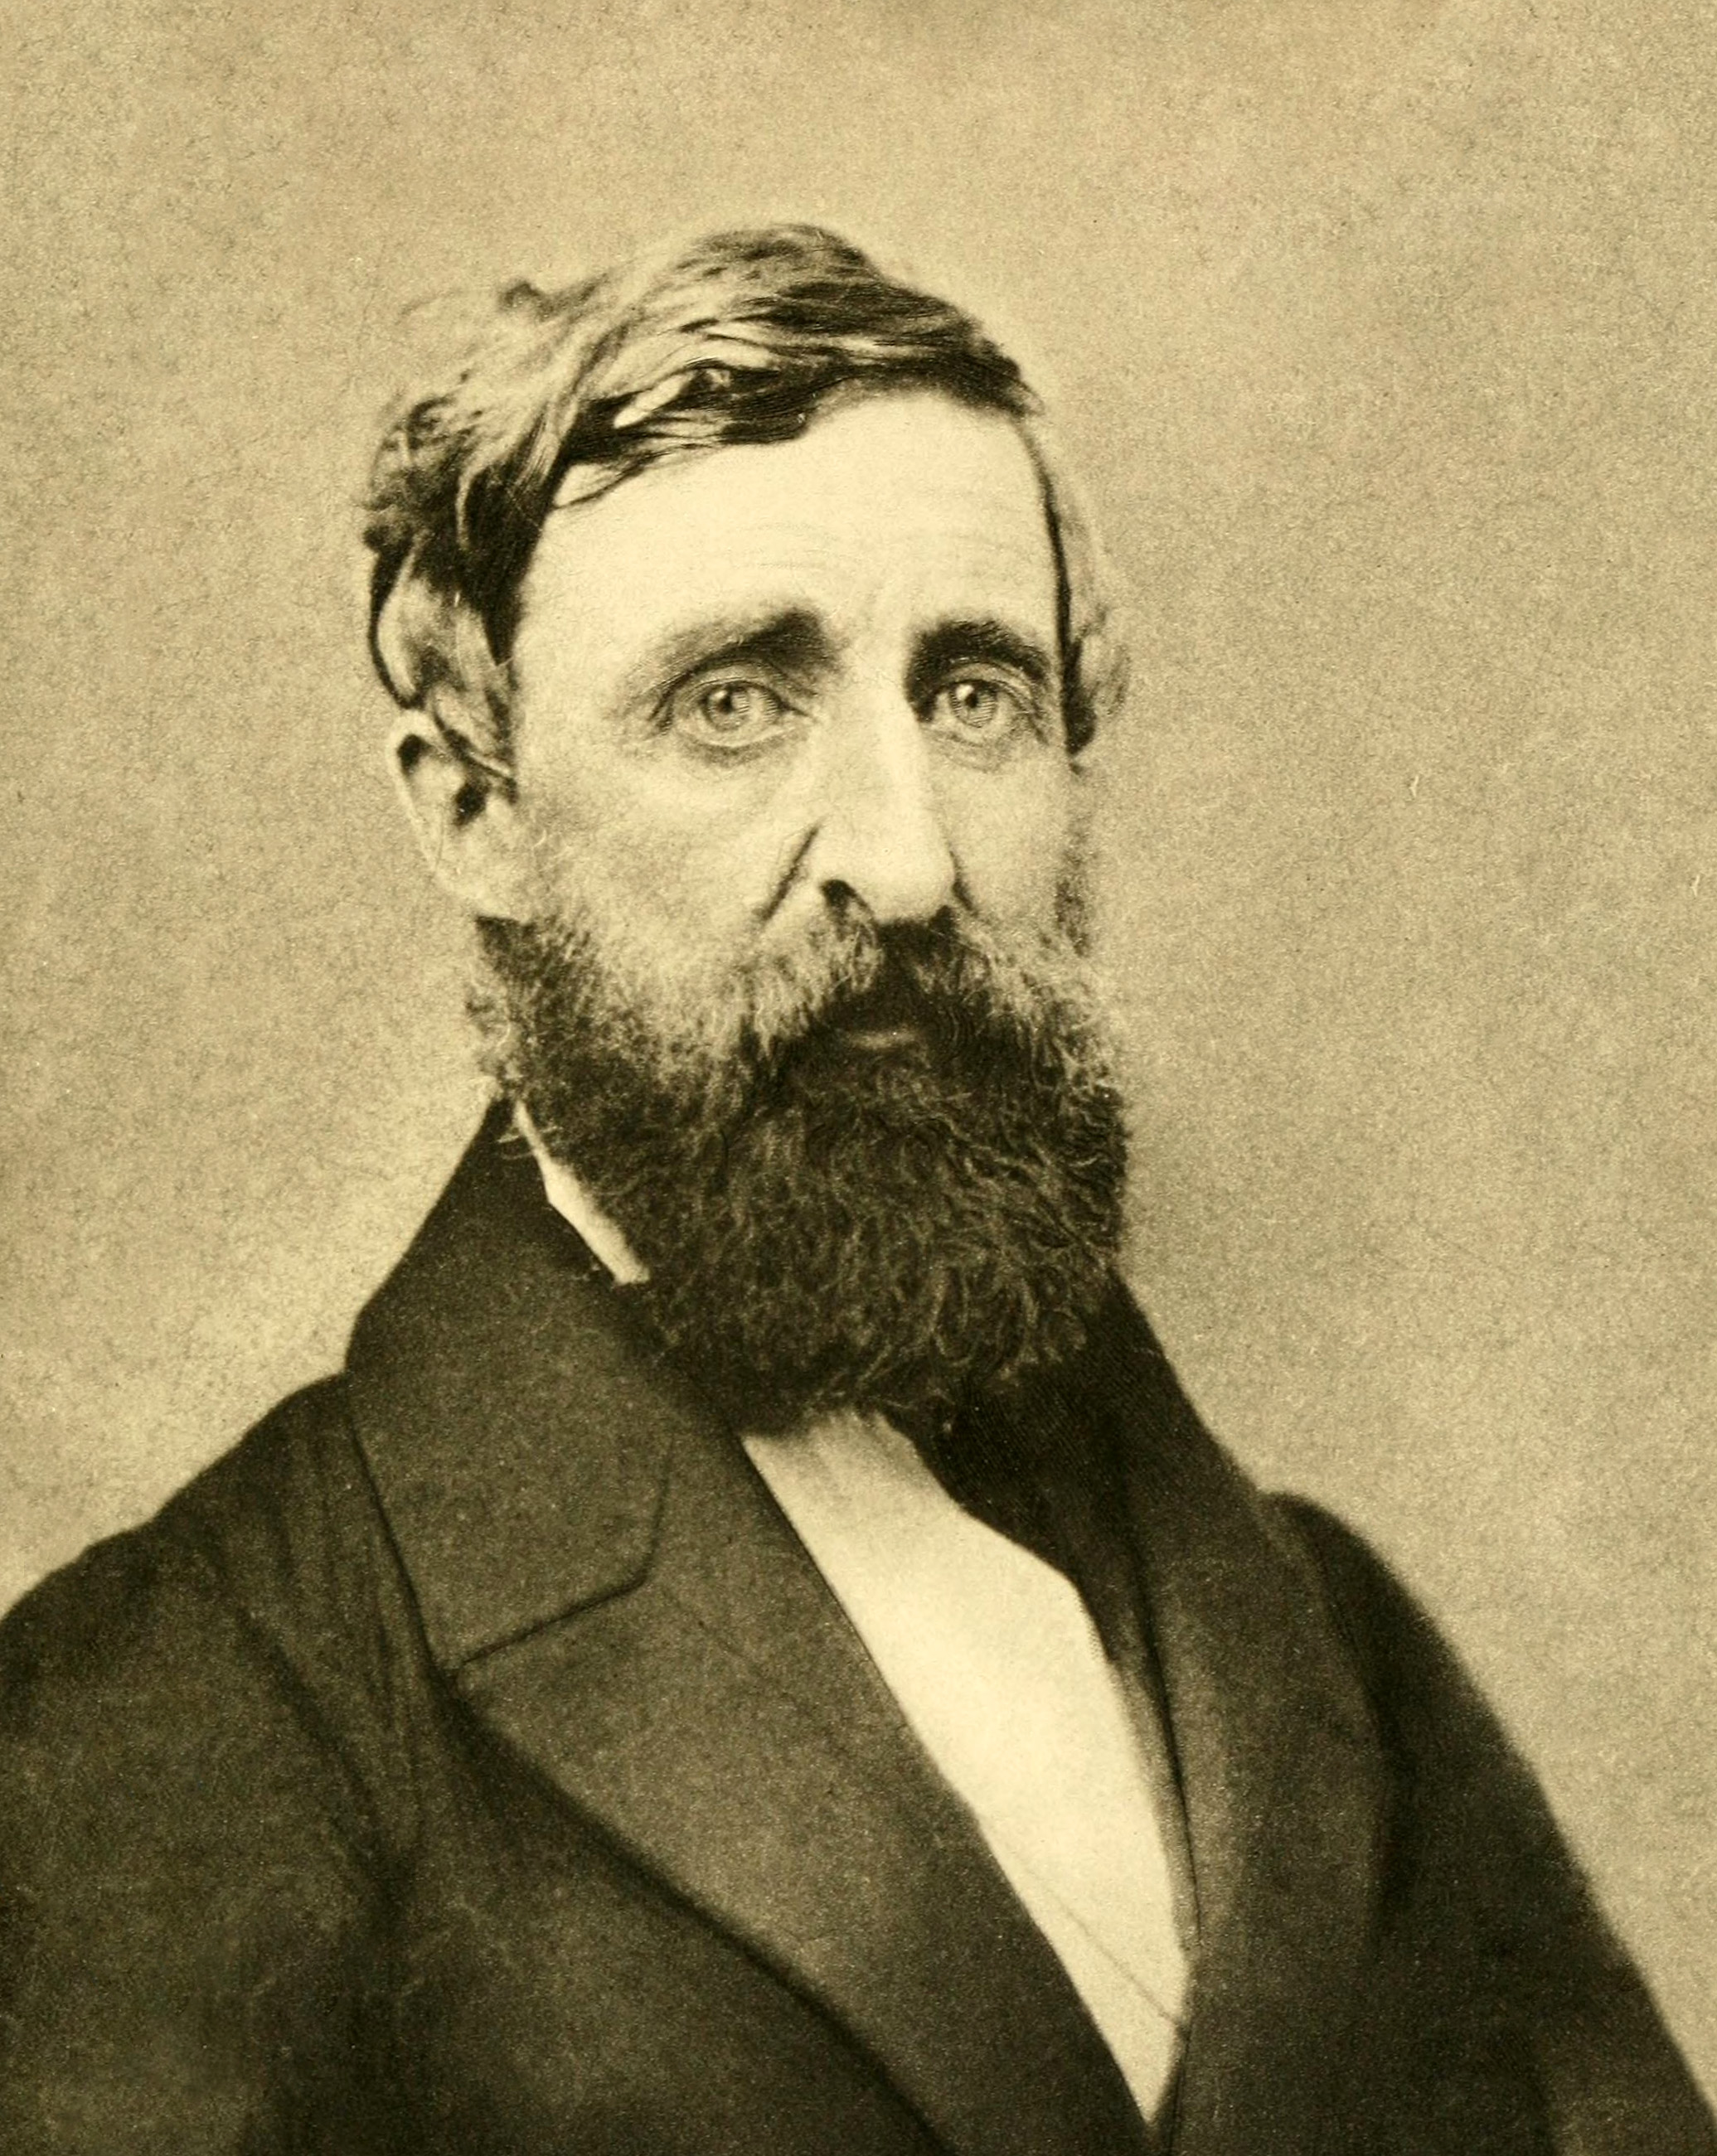 henry david thoreau transcendentalism essay Transcendentalism the night thoreau during my student days i read henry david thoreau's essay on civil disobedience for the first time henry david thoreau.